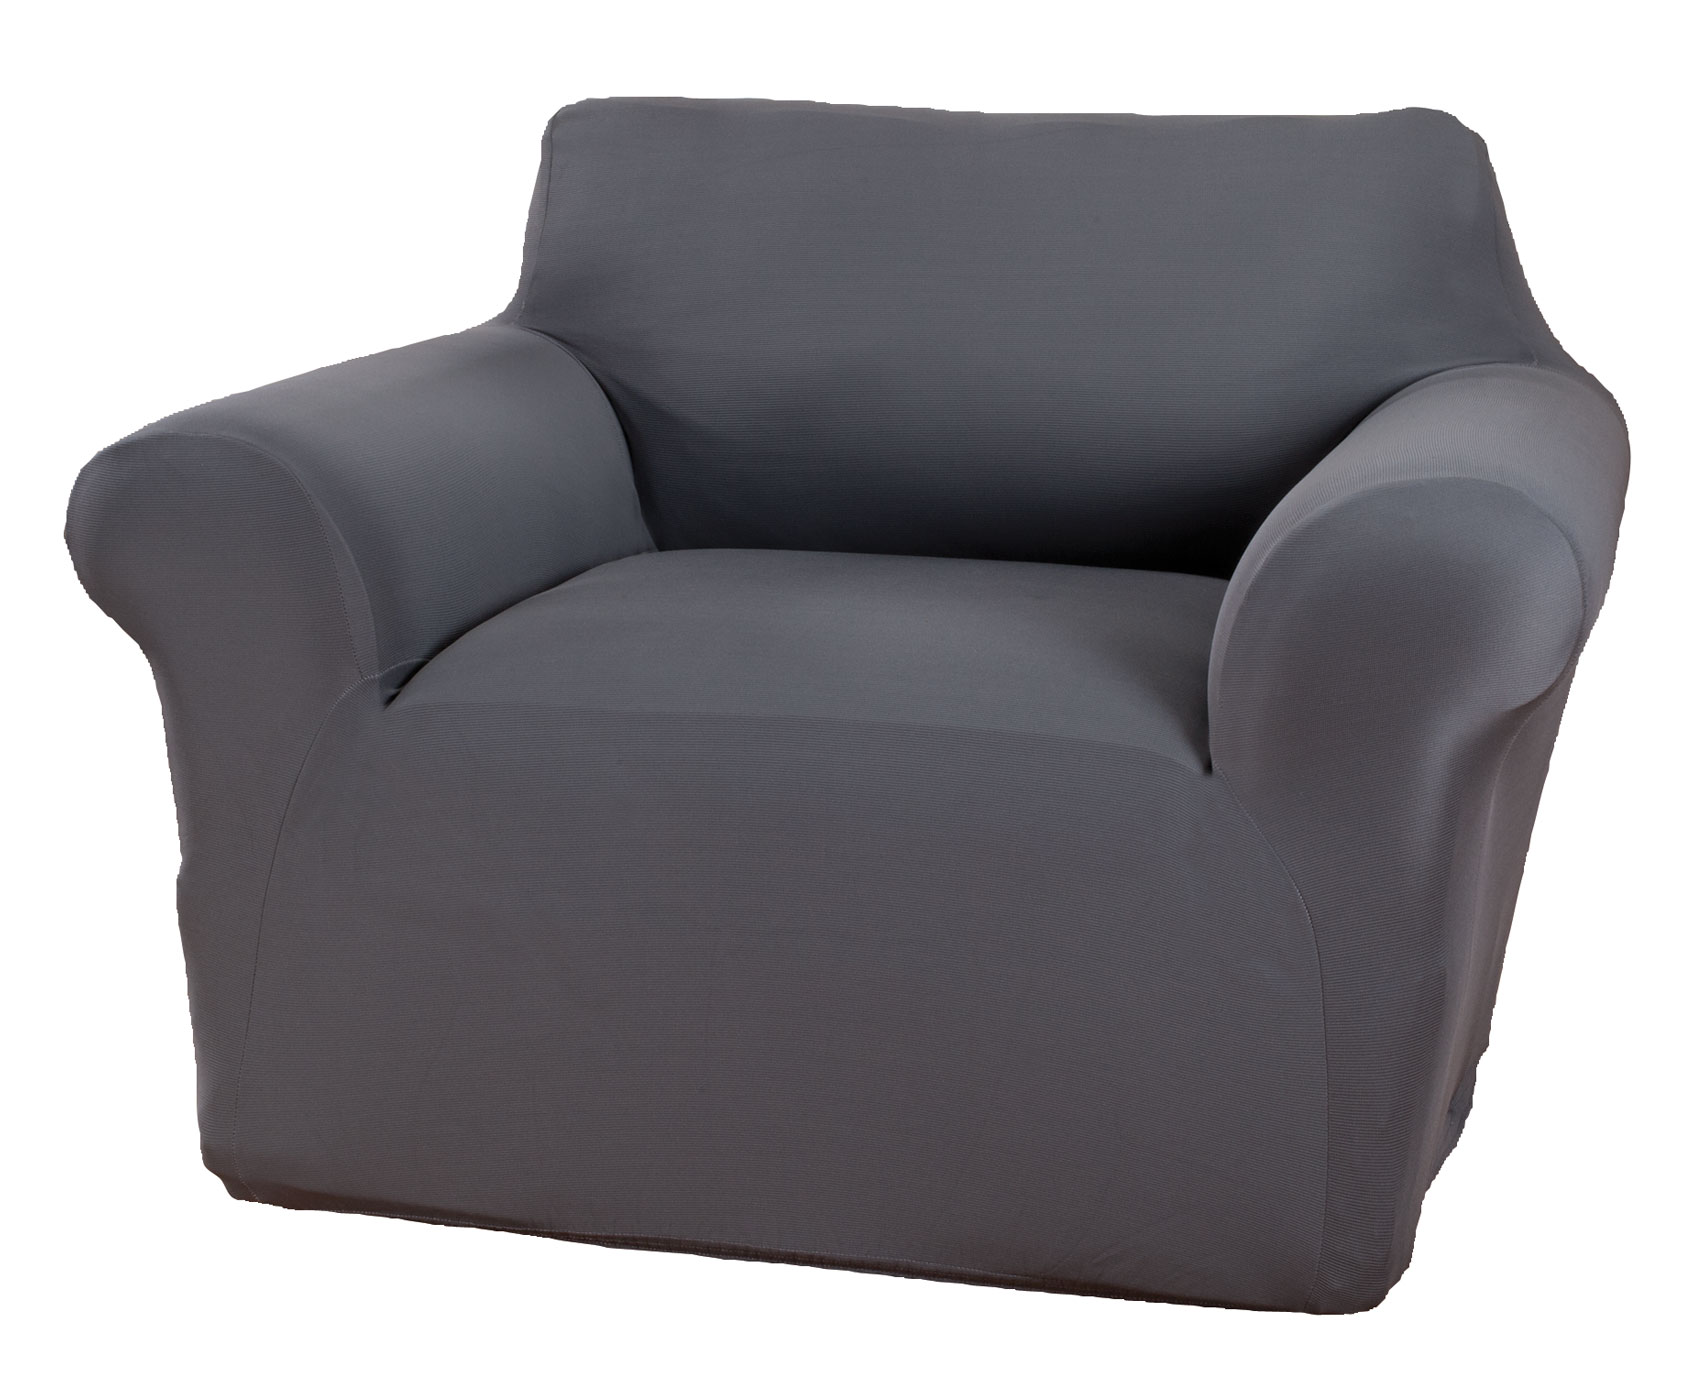 Corduroy Chair Stretch Furniture Cover Corduroy chair stretch furniture cover gives chairs an instant lift with the rich look and feel of corduroy. One-piece chair cover adds soft, breathable comfort to your chair while protecting against spills, stains and wear. Stretch design provides a smooth look that resists wrinkles and fits most chairs up to 43  W. Care is easy -- simply toss in the wash when it's time to freshen. Choose from 4 colors to complement any decor: burgundy, chocolate, ivory or gray. Furniture protector made with 97% polyester/3% spandex. Machine wash cold, gentle; tumble dry low. Use only non-chlorine bleach if needed. Do not iron. Imported.